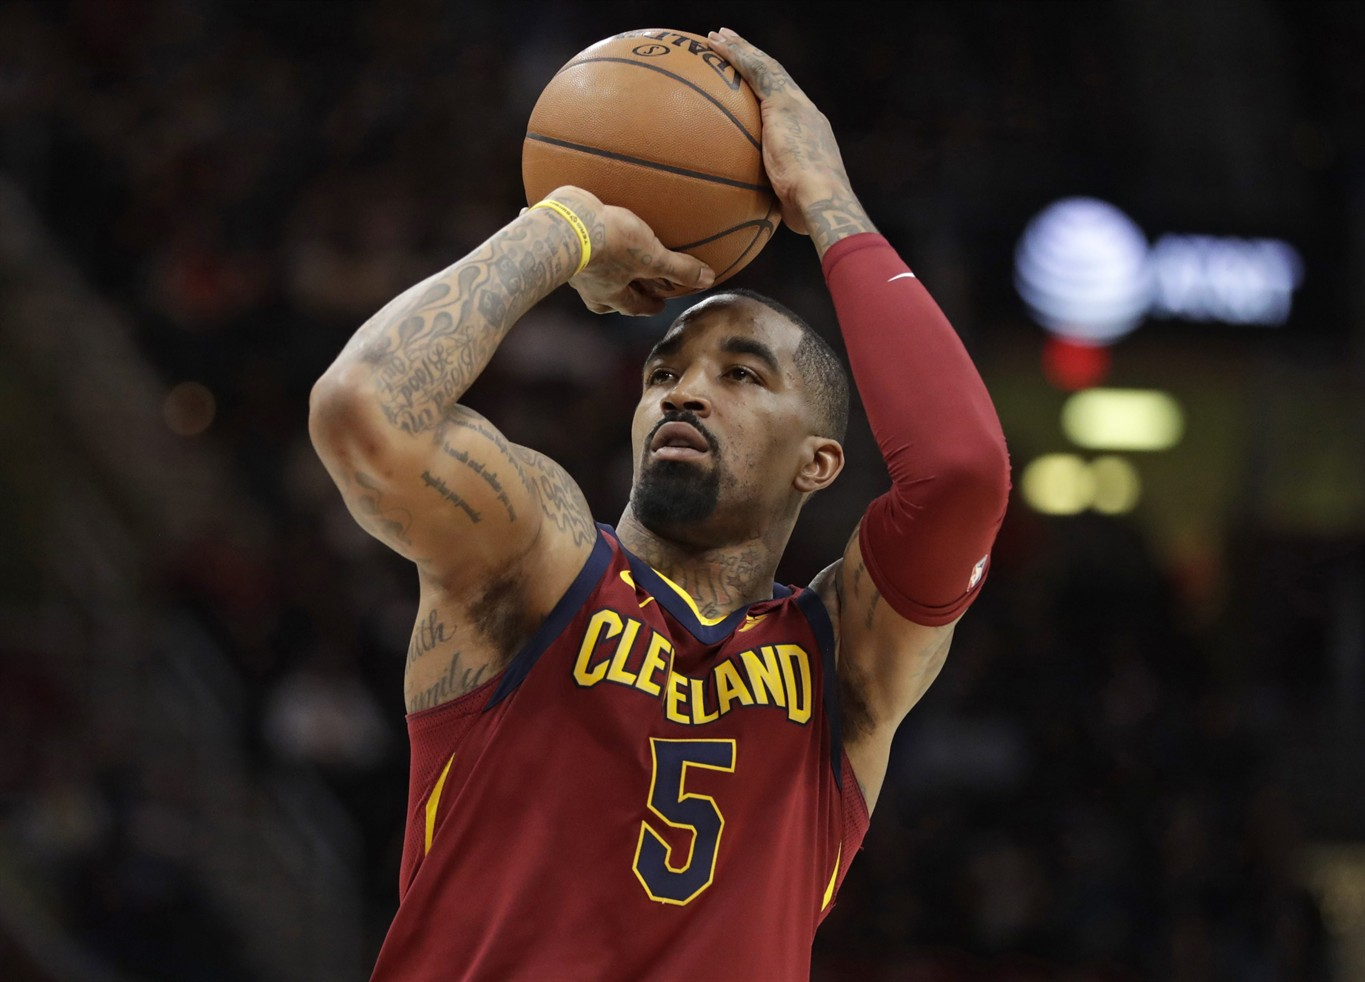 J.R. Smith will go to court for cell phone throwing incident